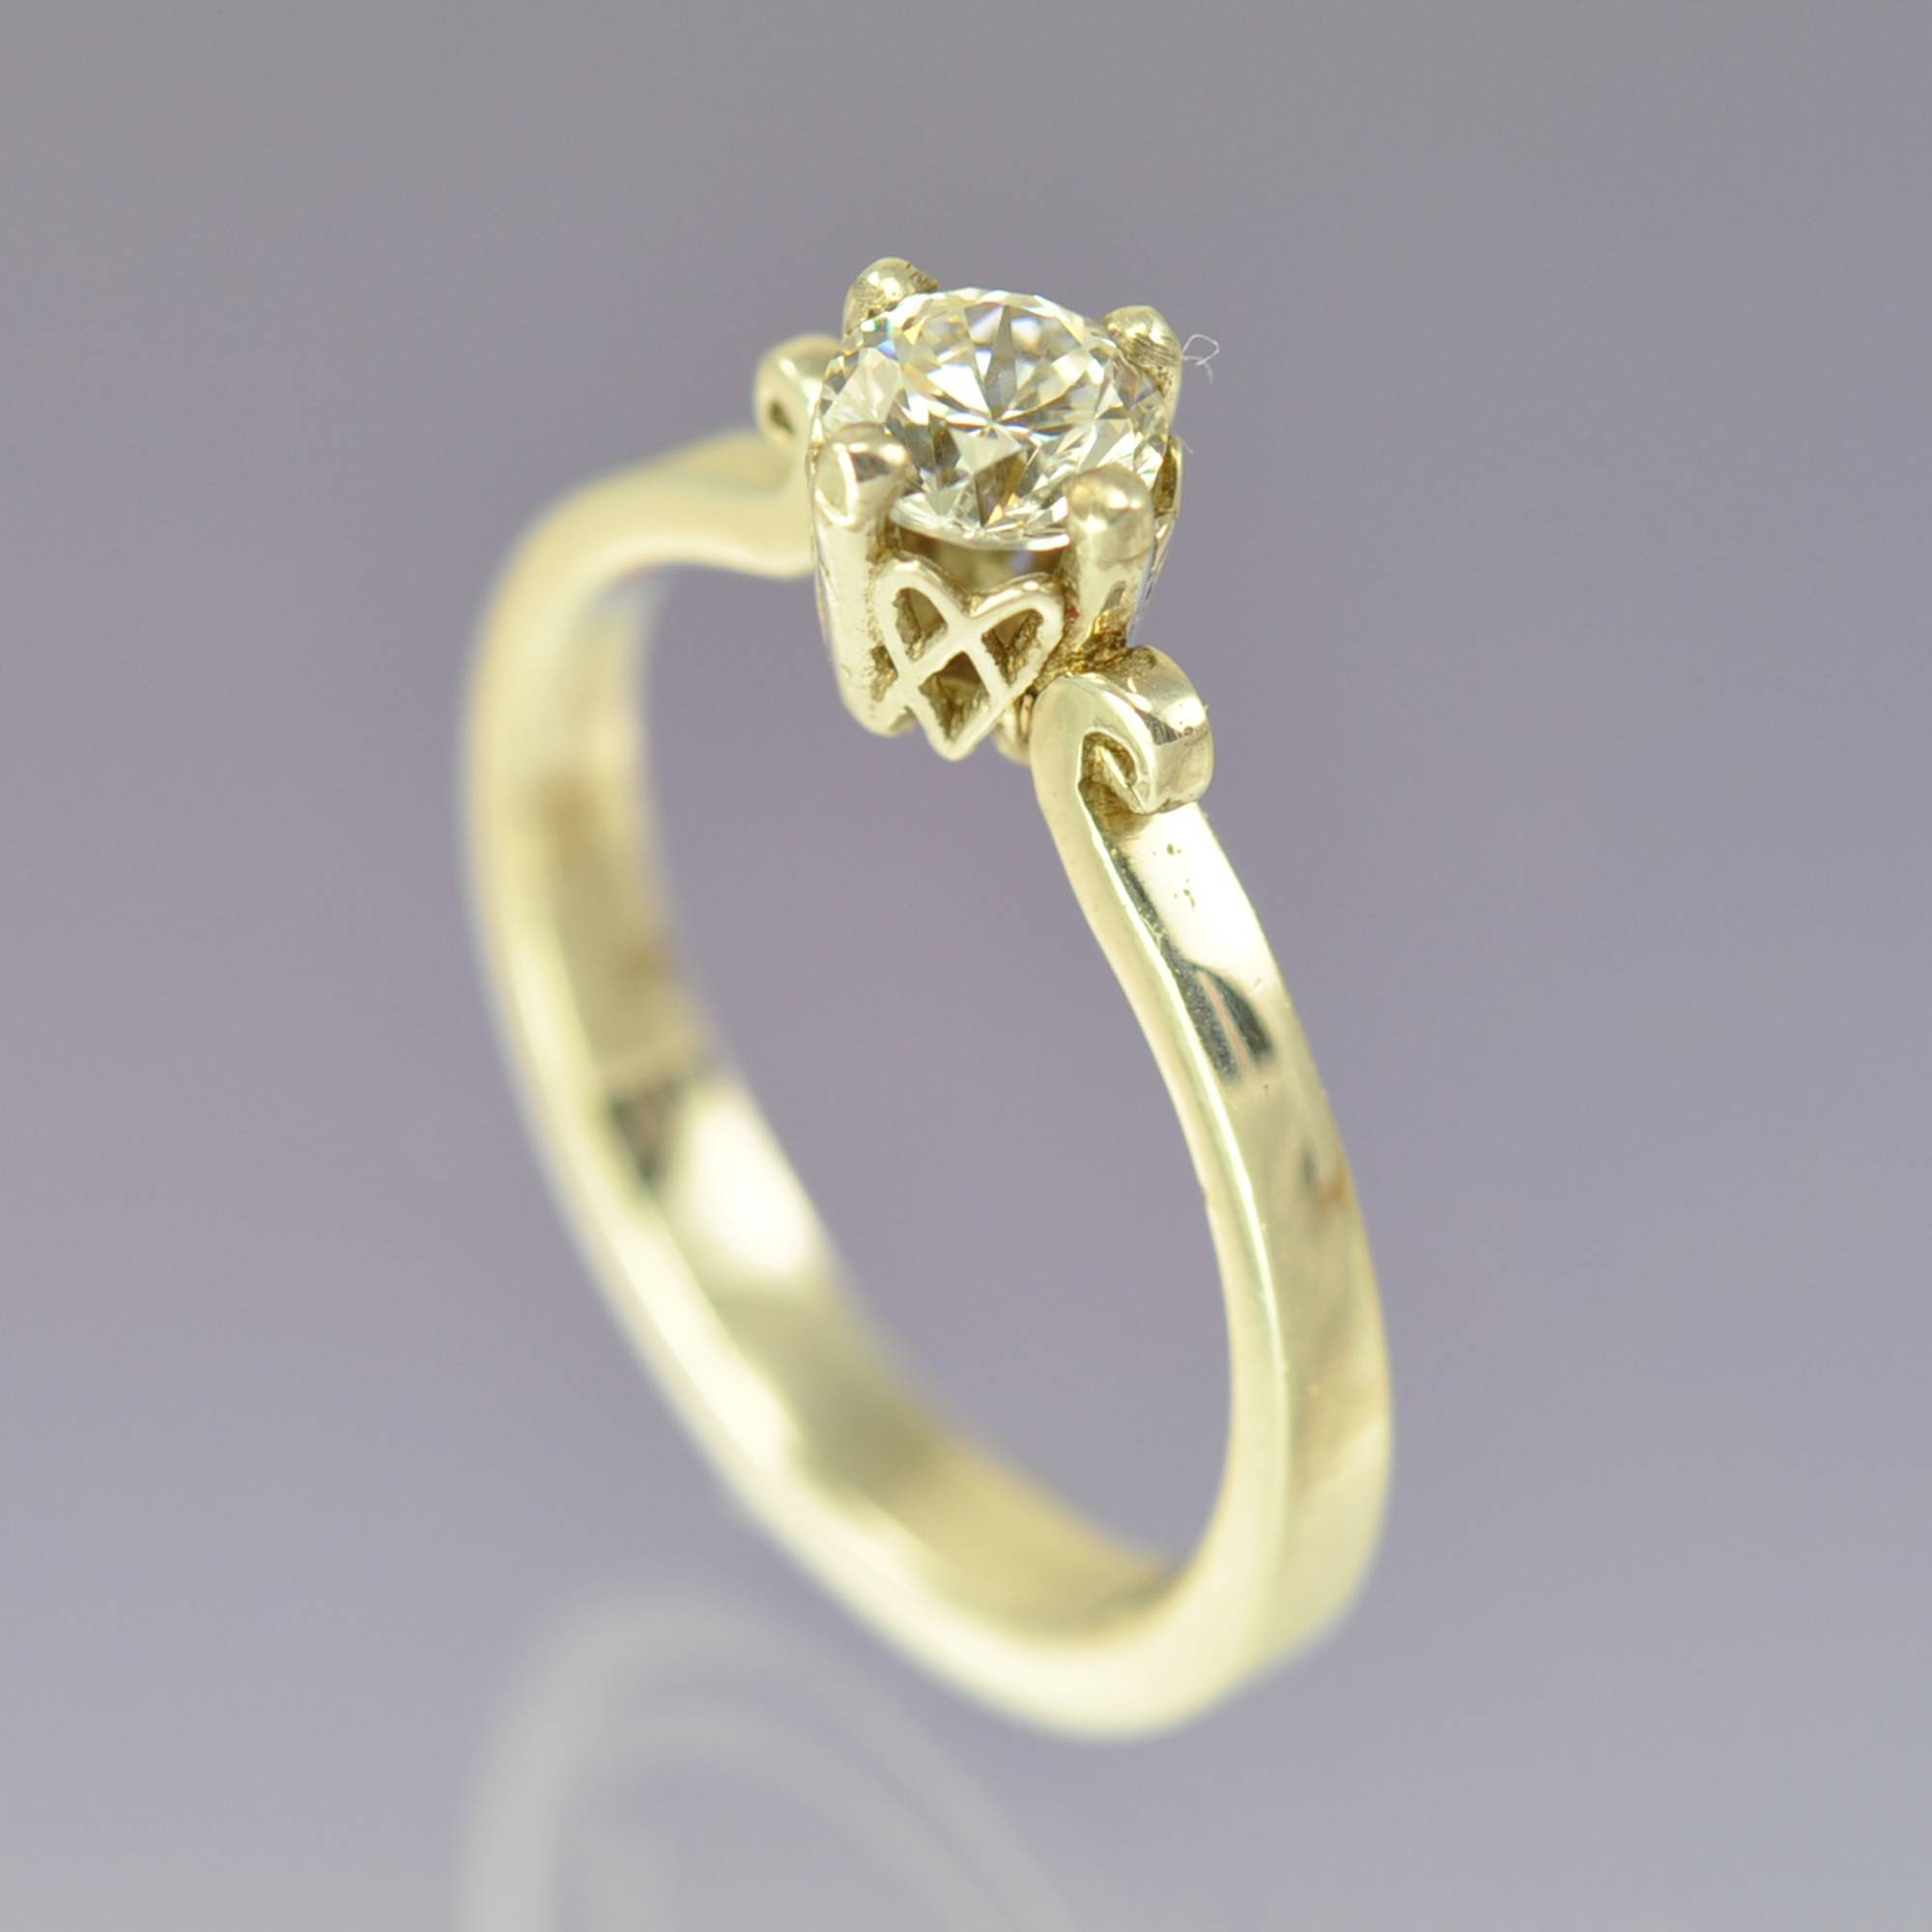 Handmade Diamond Engagement Ring – Celtic | Chris Parry – Uk Pertaining To Hand Made Engagement Rings (View 7 of 15)